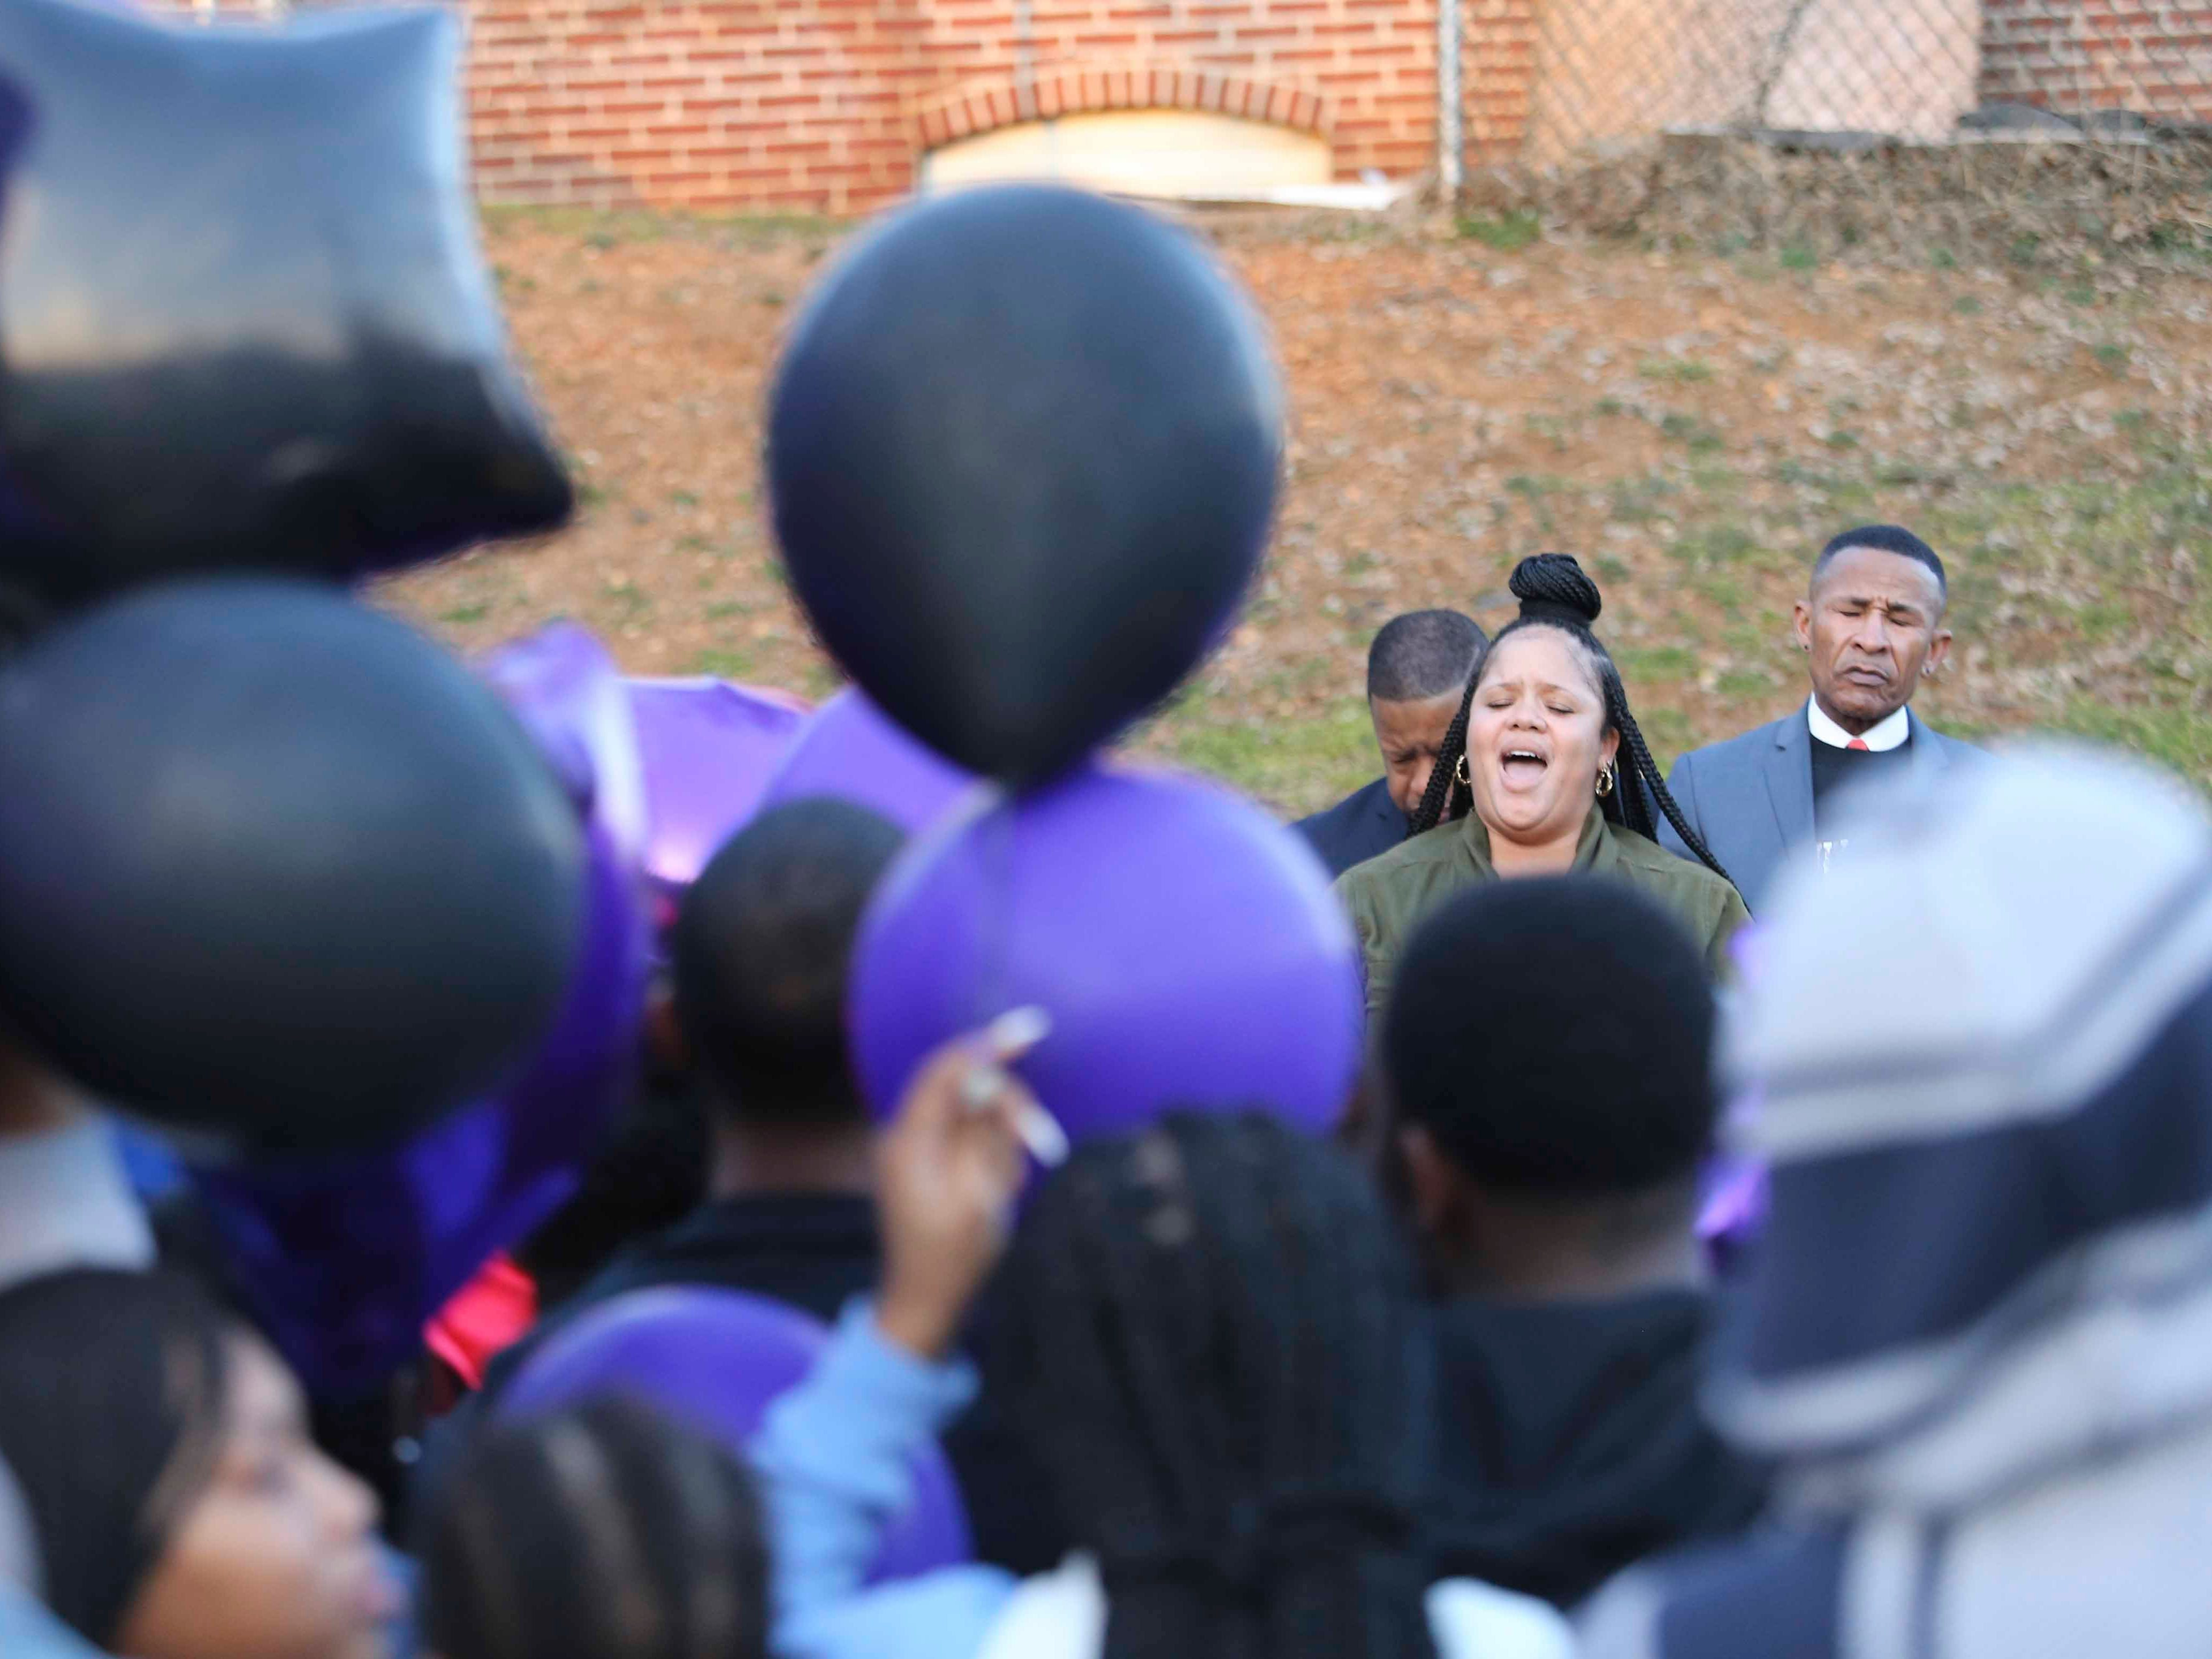 Shante Outlaw-Williams sings during a memorial gathering for Janiya Henry Friday evening after she and Christian Coffield were killed earlier this week in Wilmington